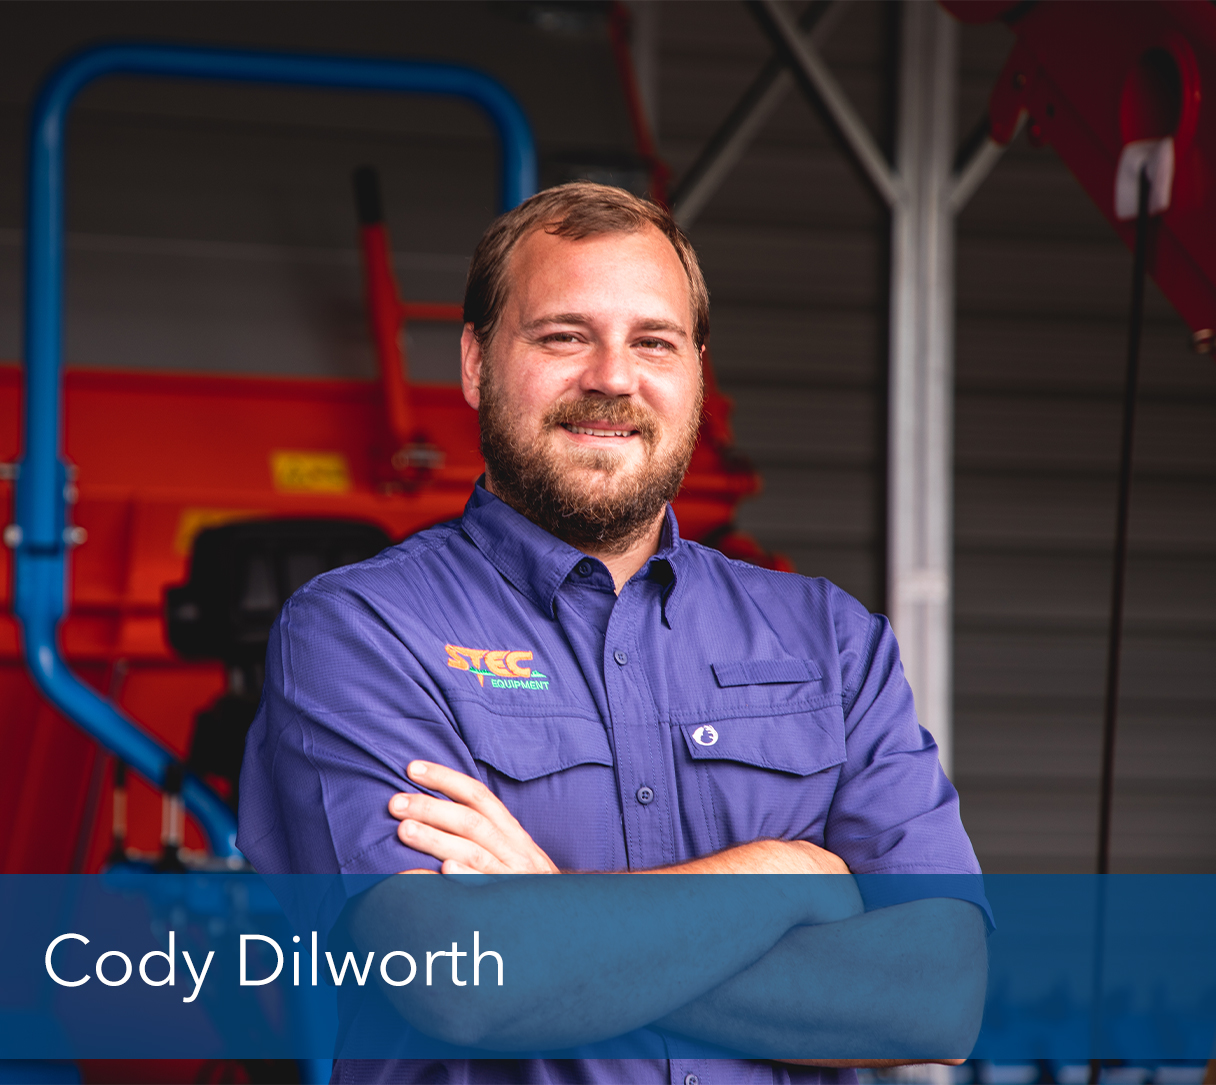 "<b>Cody Dilworth</b>, Inside Sales Manager <br><p></p>      Cody sells equipment to the walk in customer, or via email or phone.  <p></p>       Prior to sales, He was in parts for 15 years and started sales 3 years ago. He has been with STEC for 7 years.<p></p>       In his spare time he loves spending time with family, also when he has time; fishing and metal detecting. <p></p>      ""His family inspires him, ""I drive myself to be a better man and role model because of them."" ""Accept responsibility for your life. Know that it is you who will get you where you want to go, no one else can that for you."" <br>-Les Brown<p></p>       He gets great gratification knowing that has a small roll in getting some of the most prestigious playing fields and courses in history ready for play."